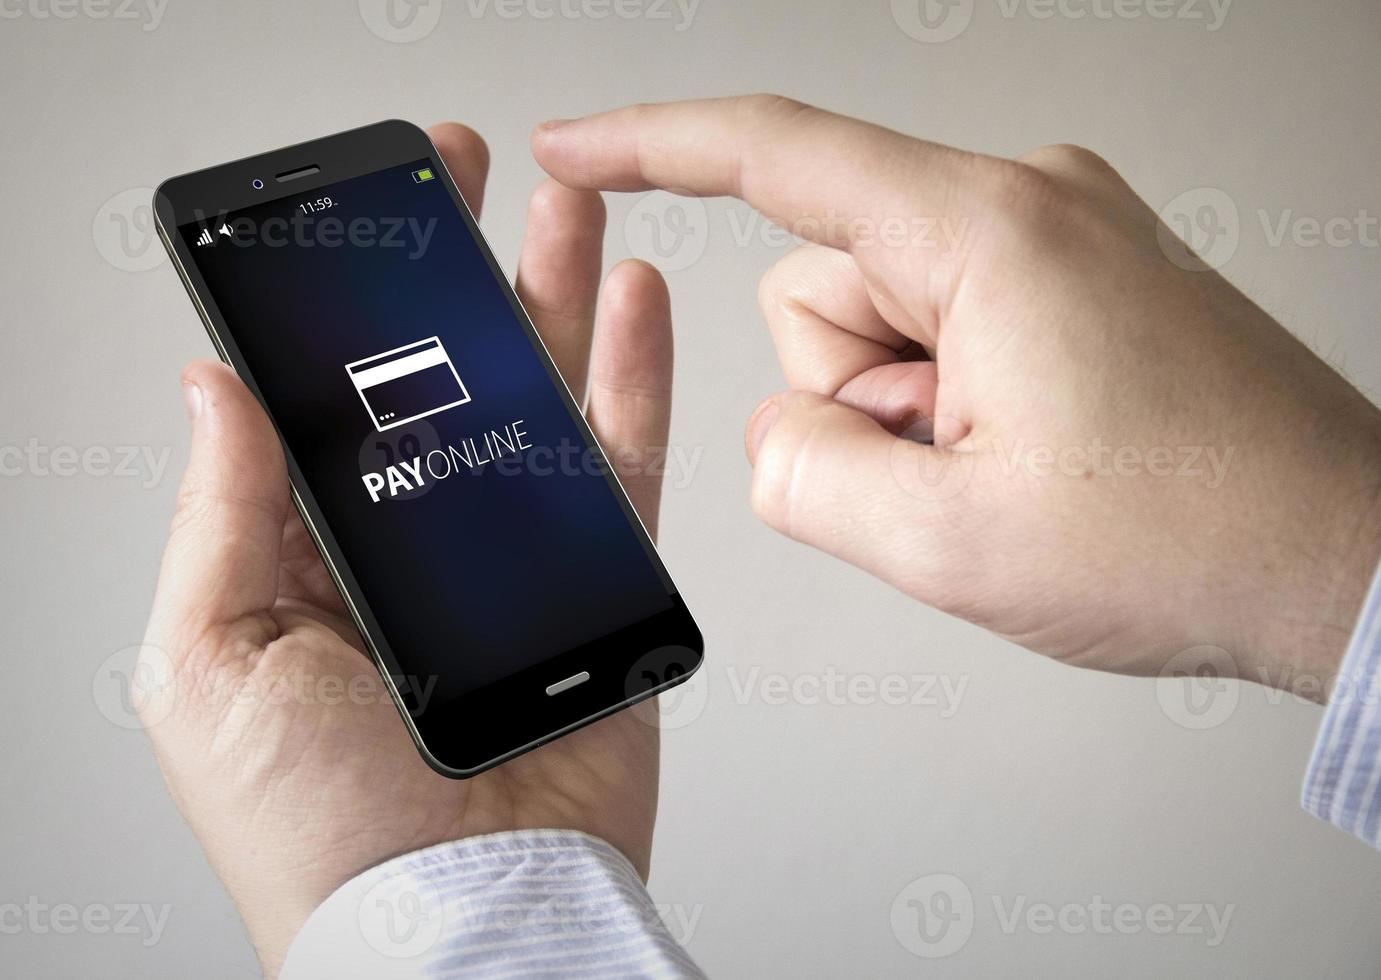 touchscreen pay online smartphone photo